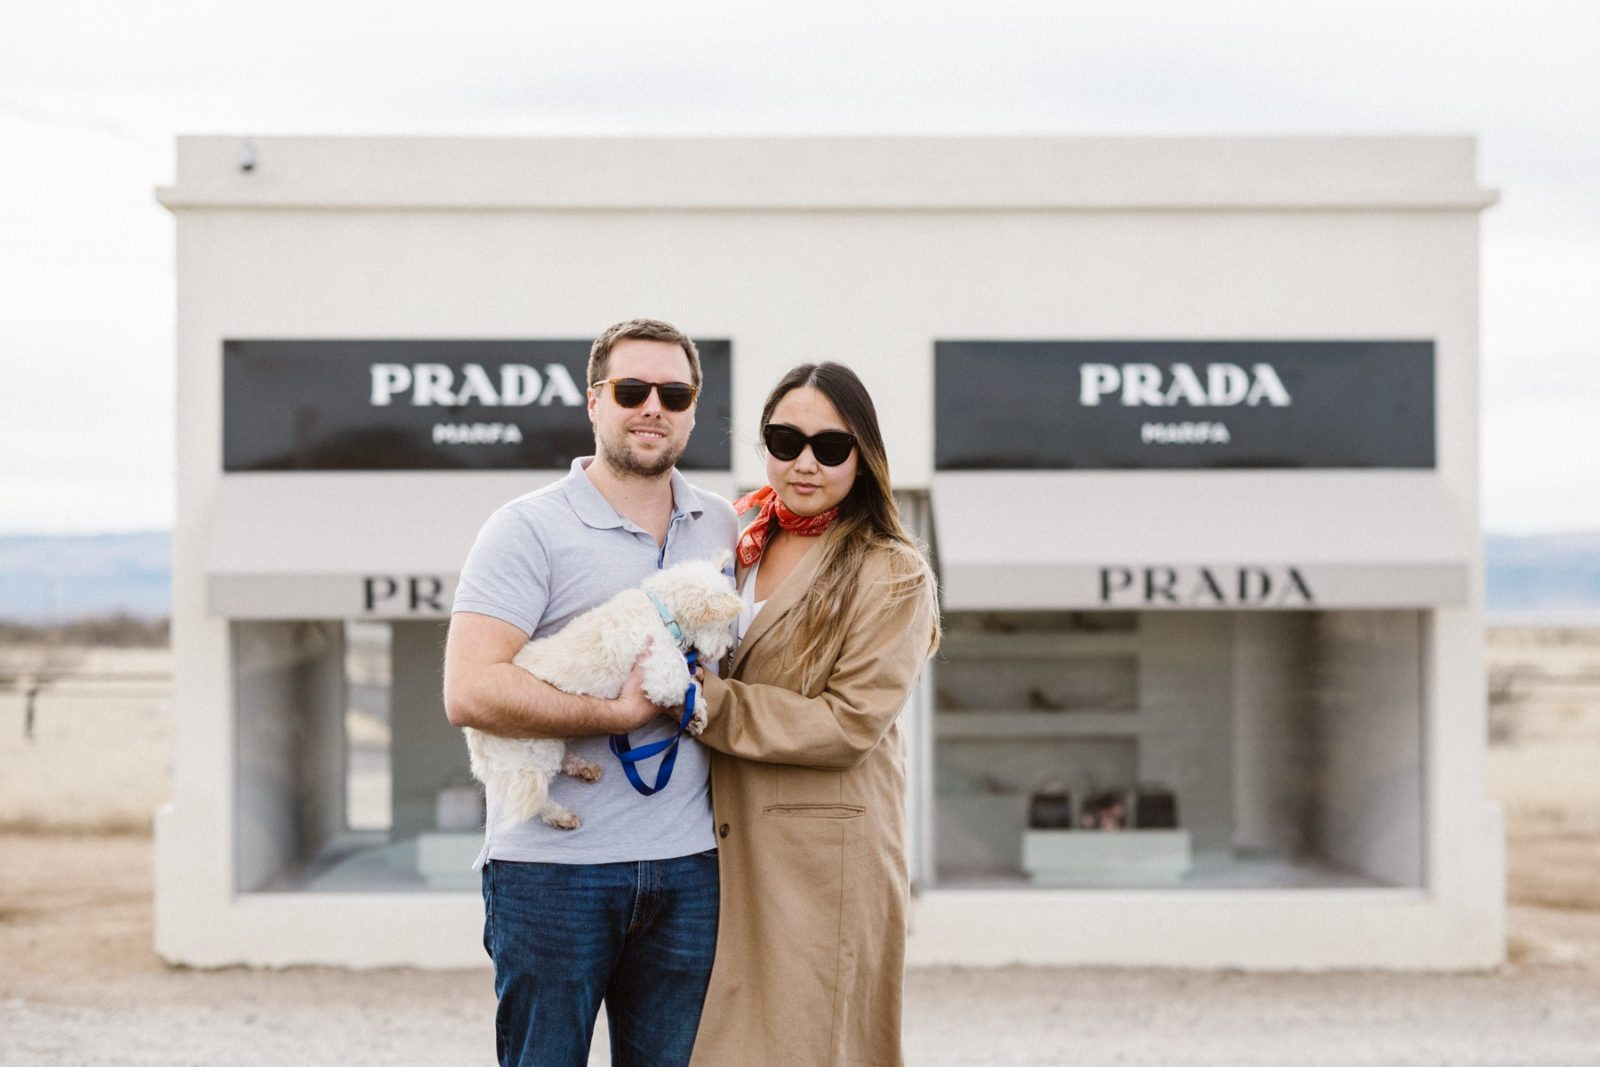 Prada Marfa off of U.S. 90 in Valentine, Texas